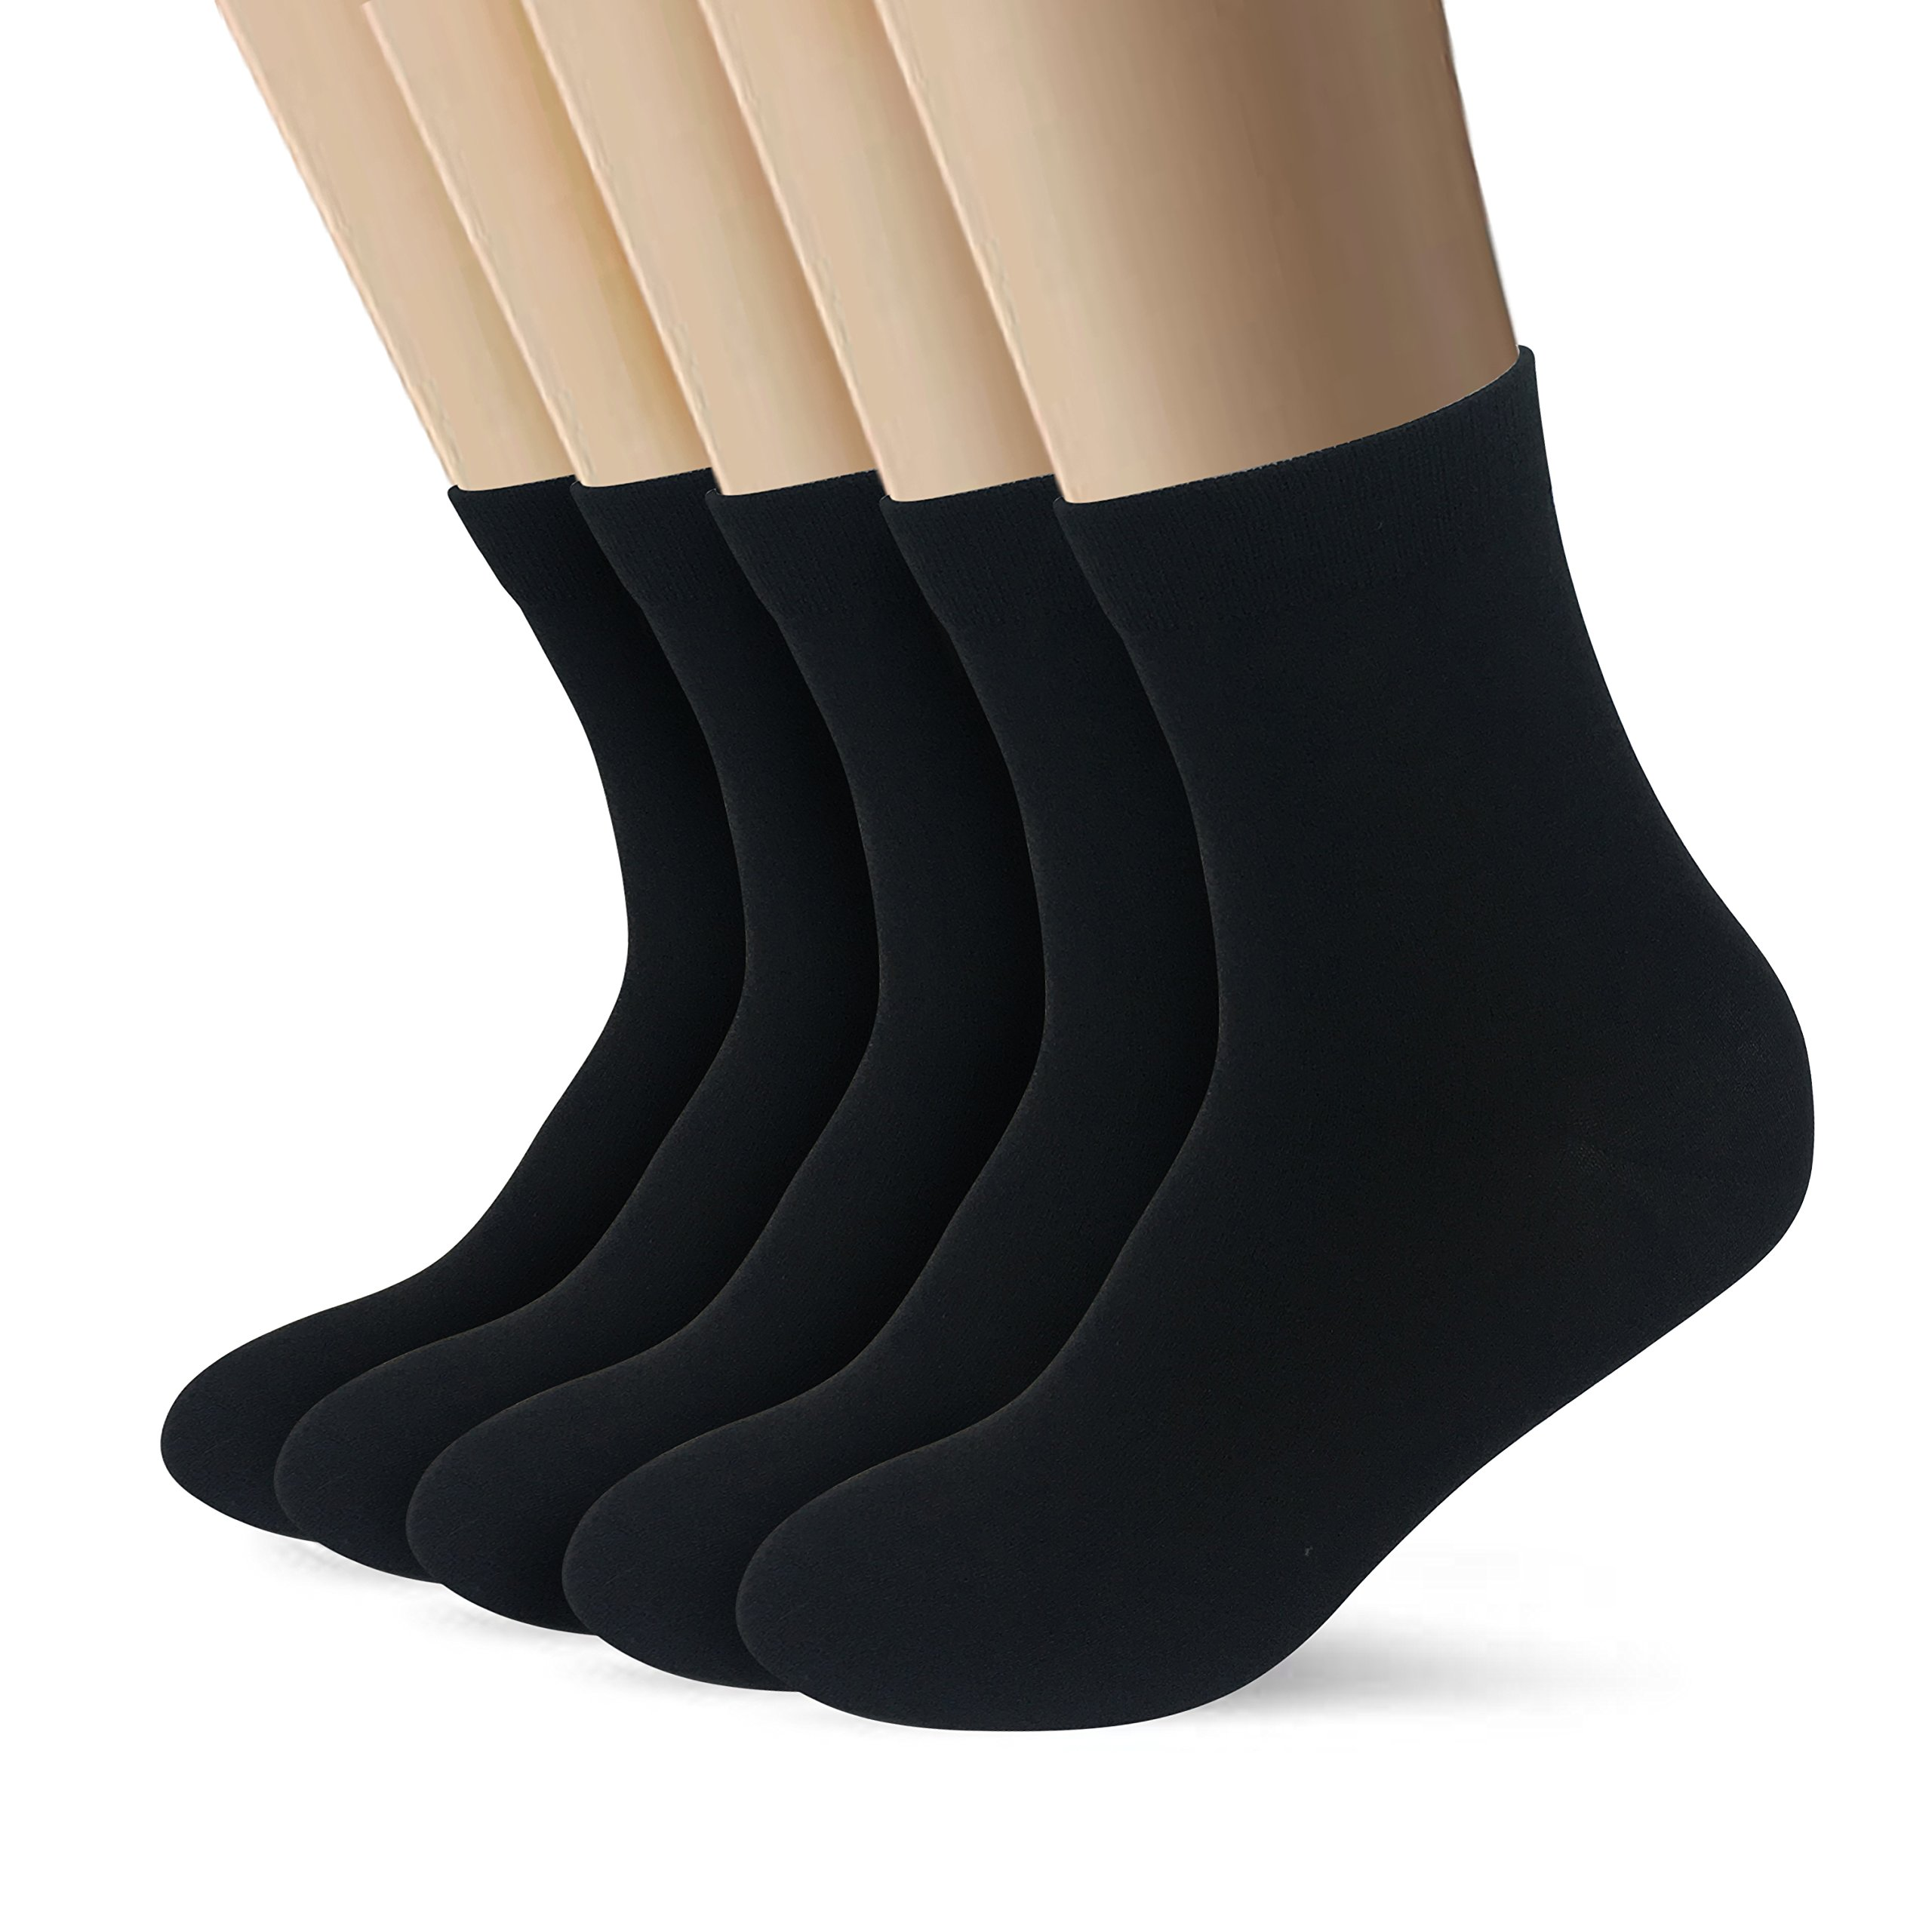 Bamboo Men sock Low Quarter Athletic Sock Ankle High Odor Resistant soft Sock 5 Pairs (Black)